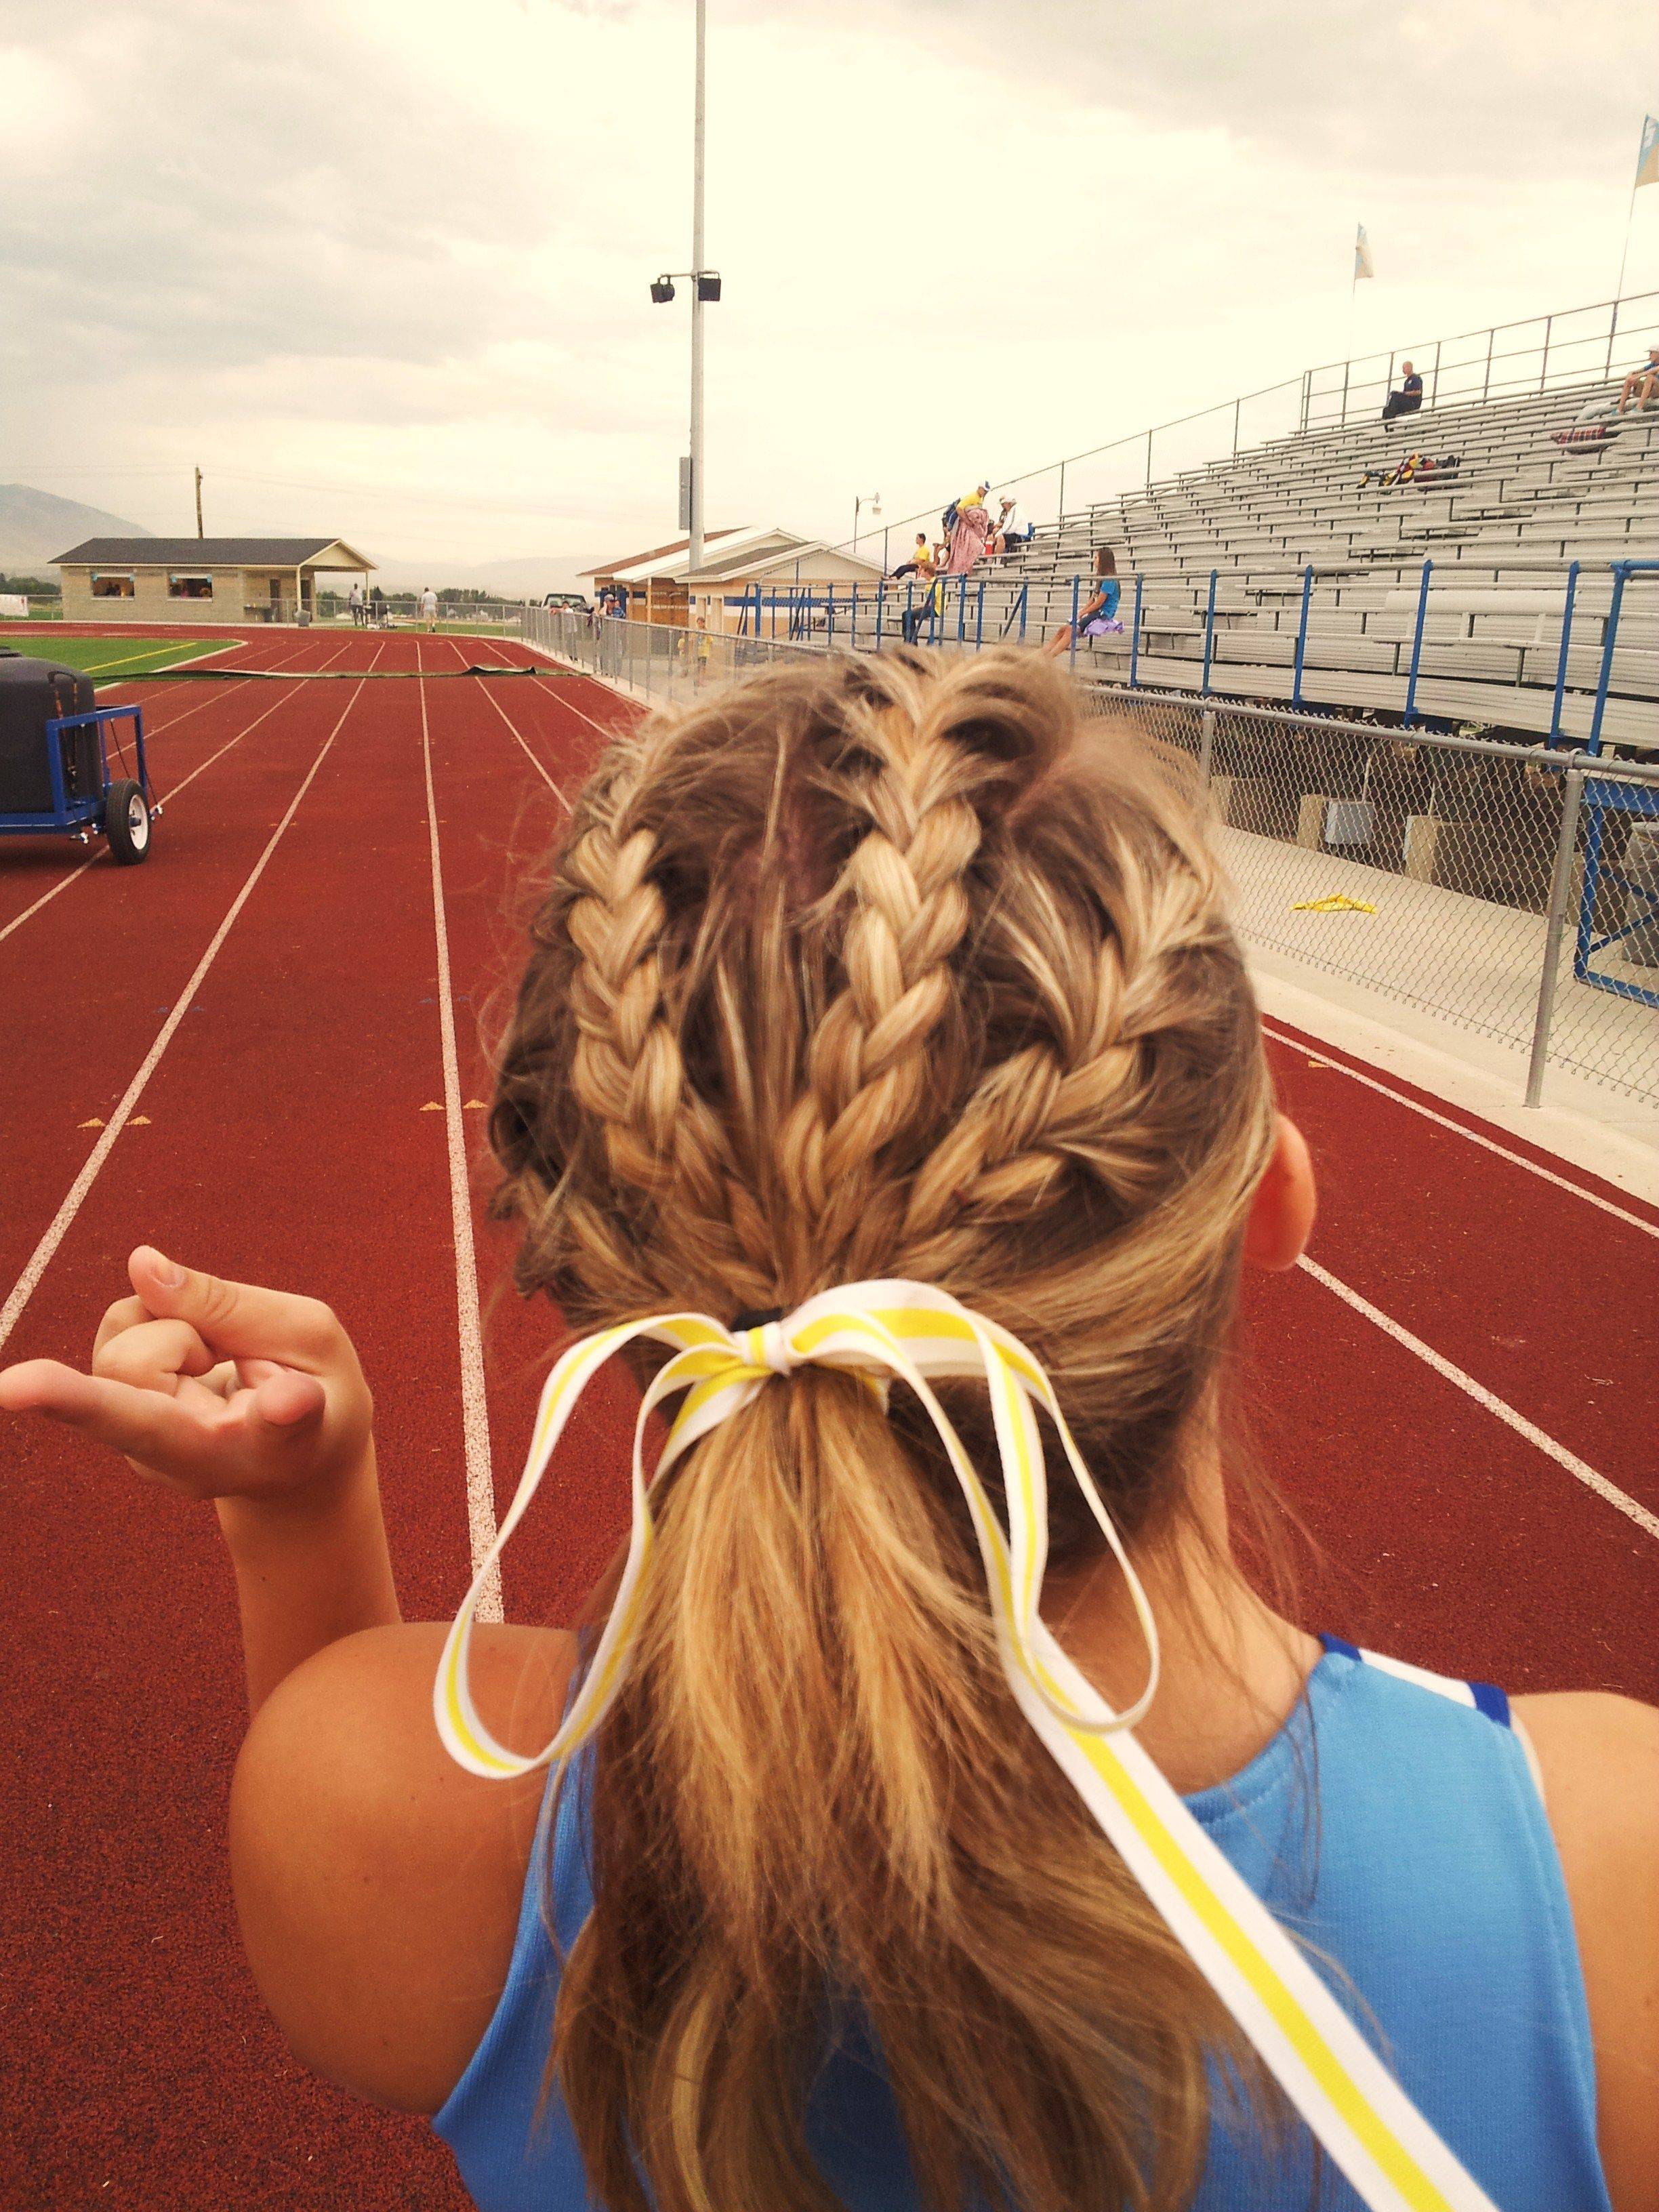 Best ideas about Cute Softball Hairstyles . Save or Pin 4 Netball Attacking Drills for Quick Improvement Now.